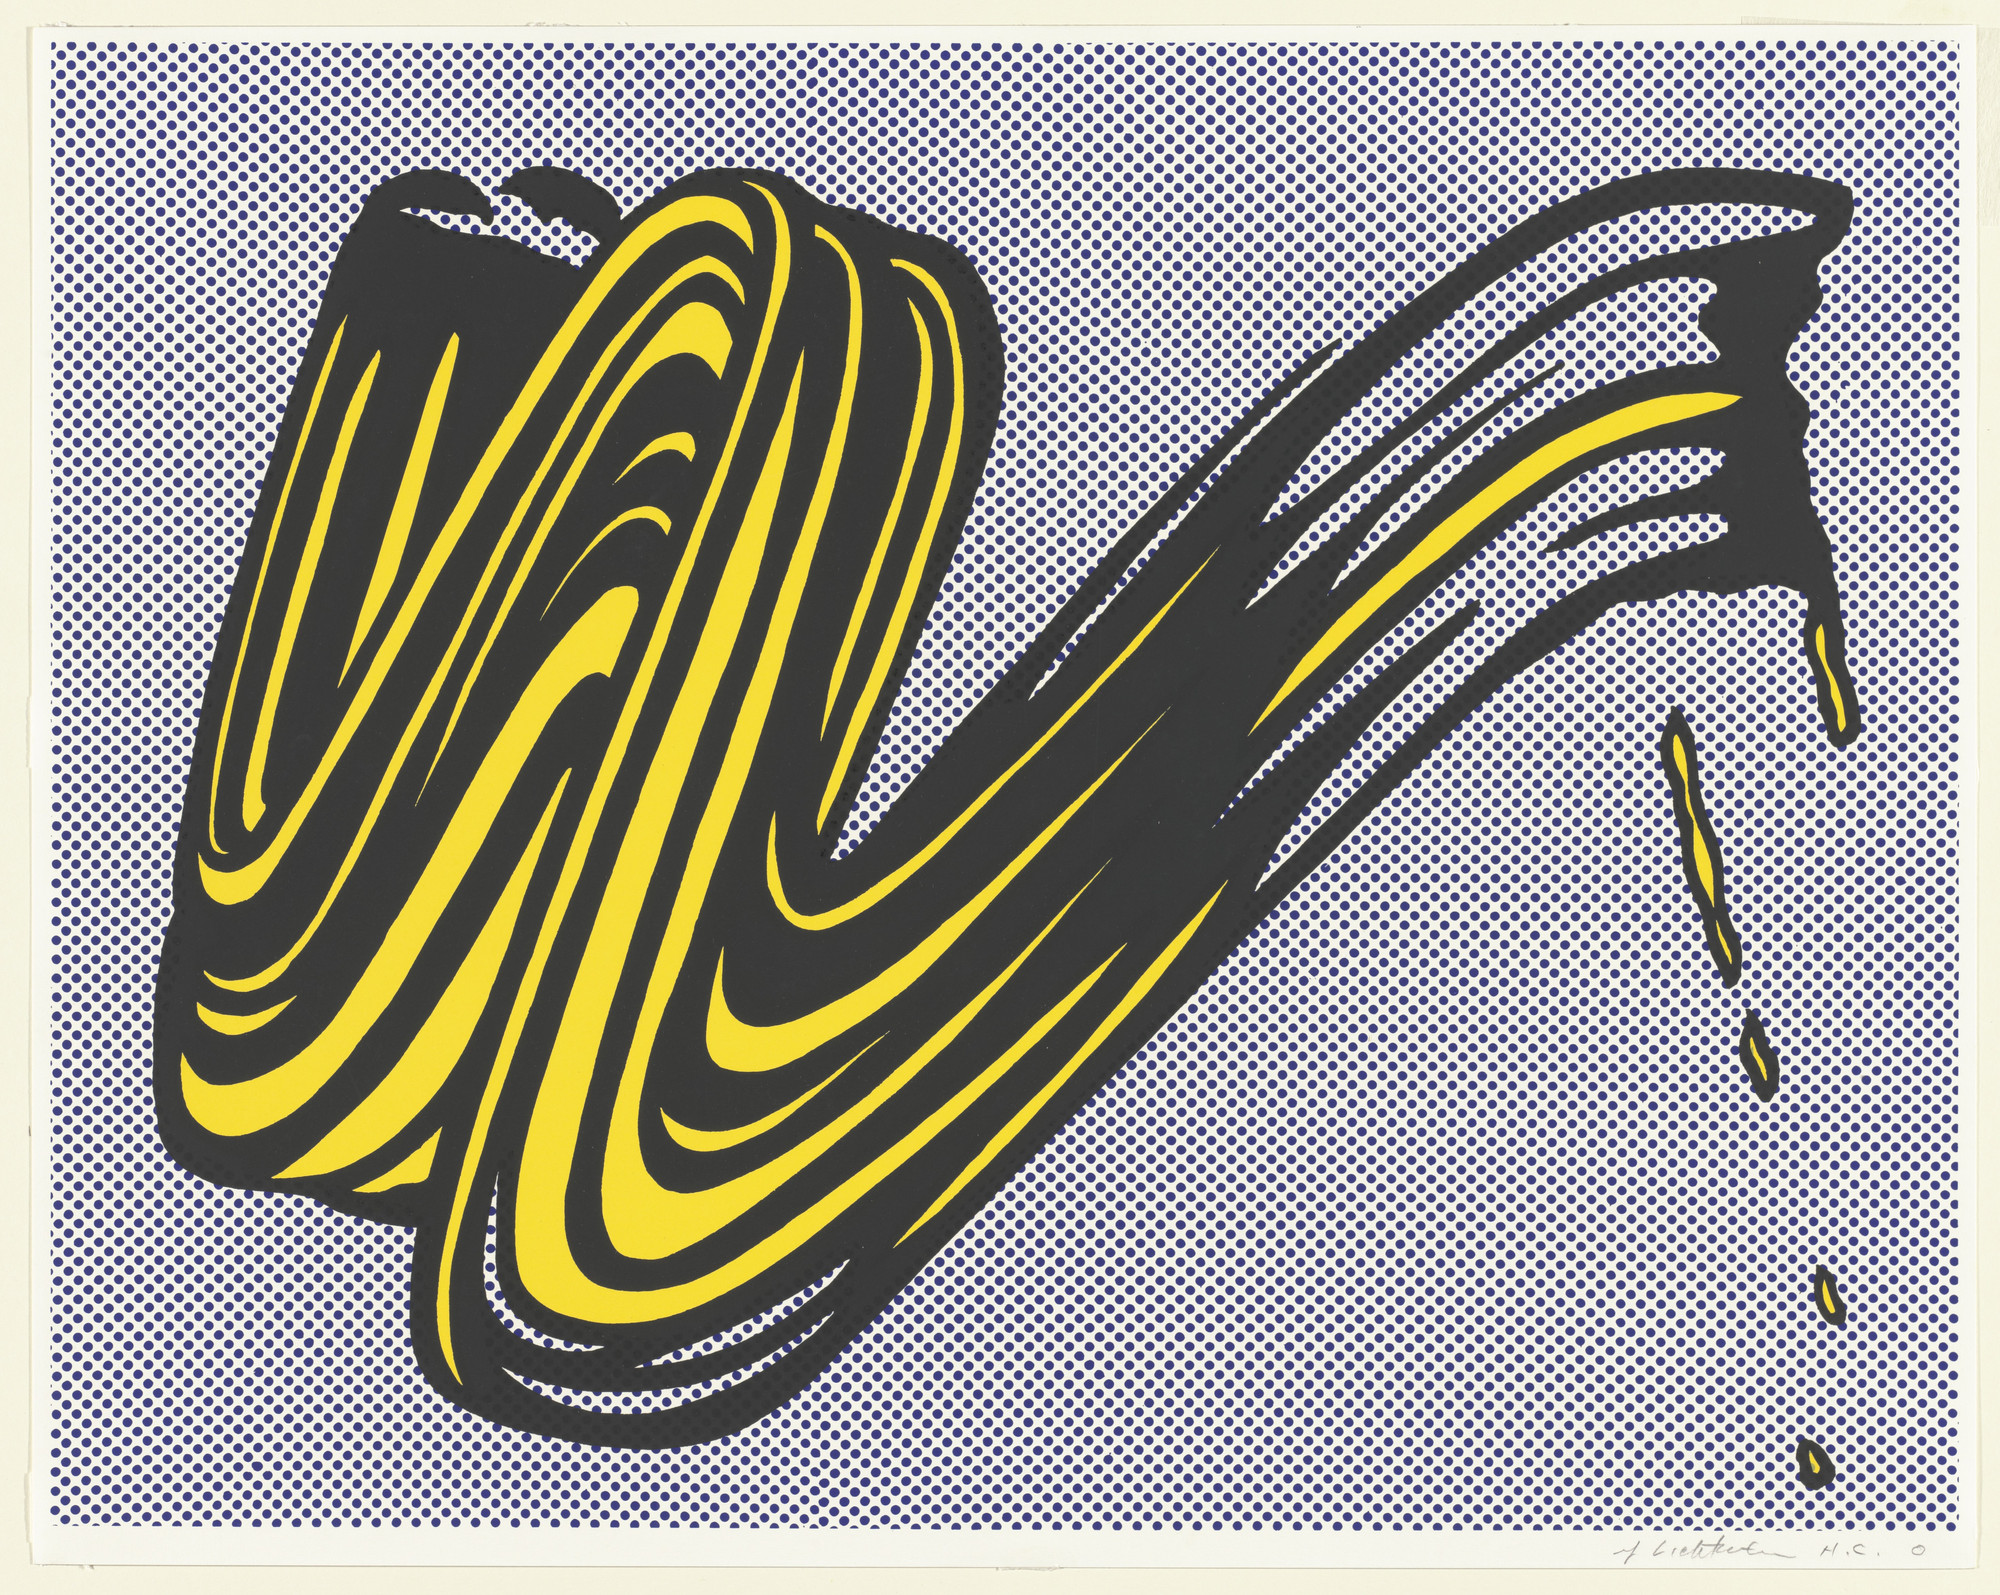 Roy Lichtenstein. Brushstroke. 1965